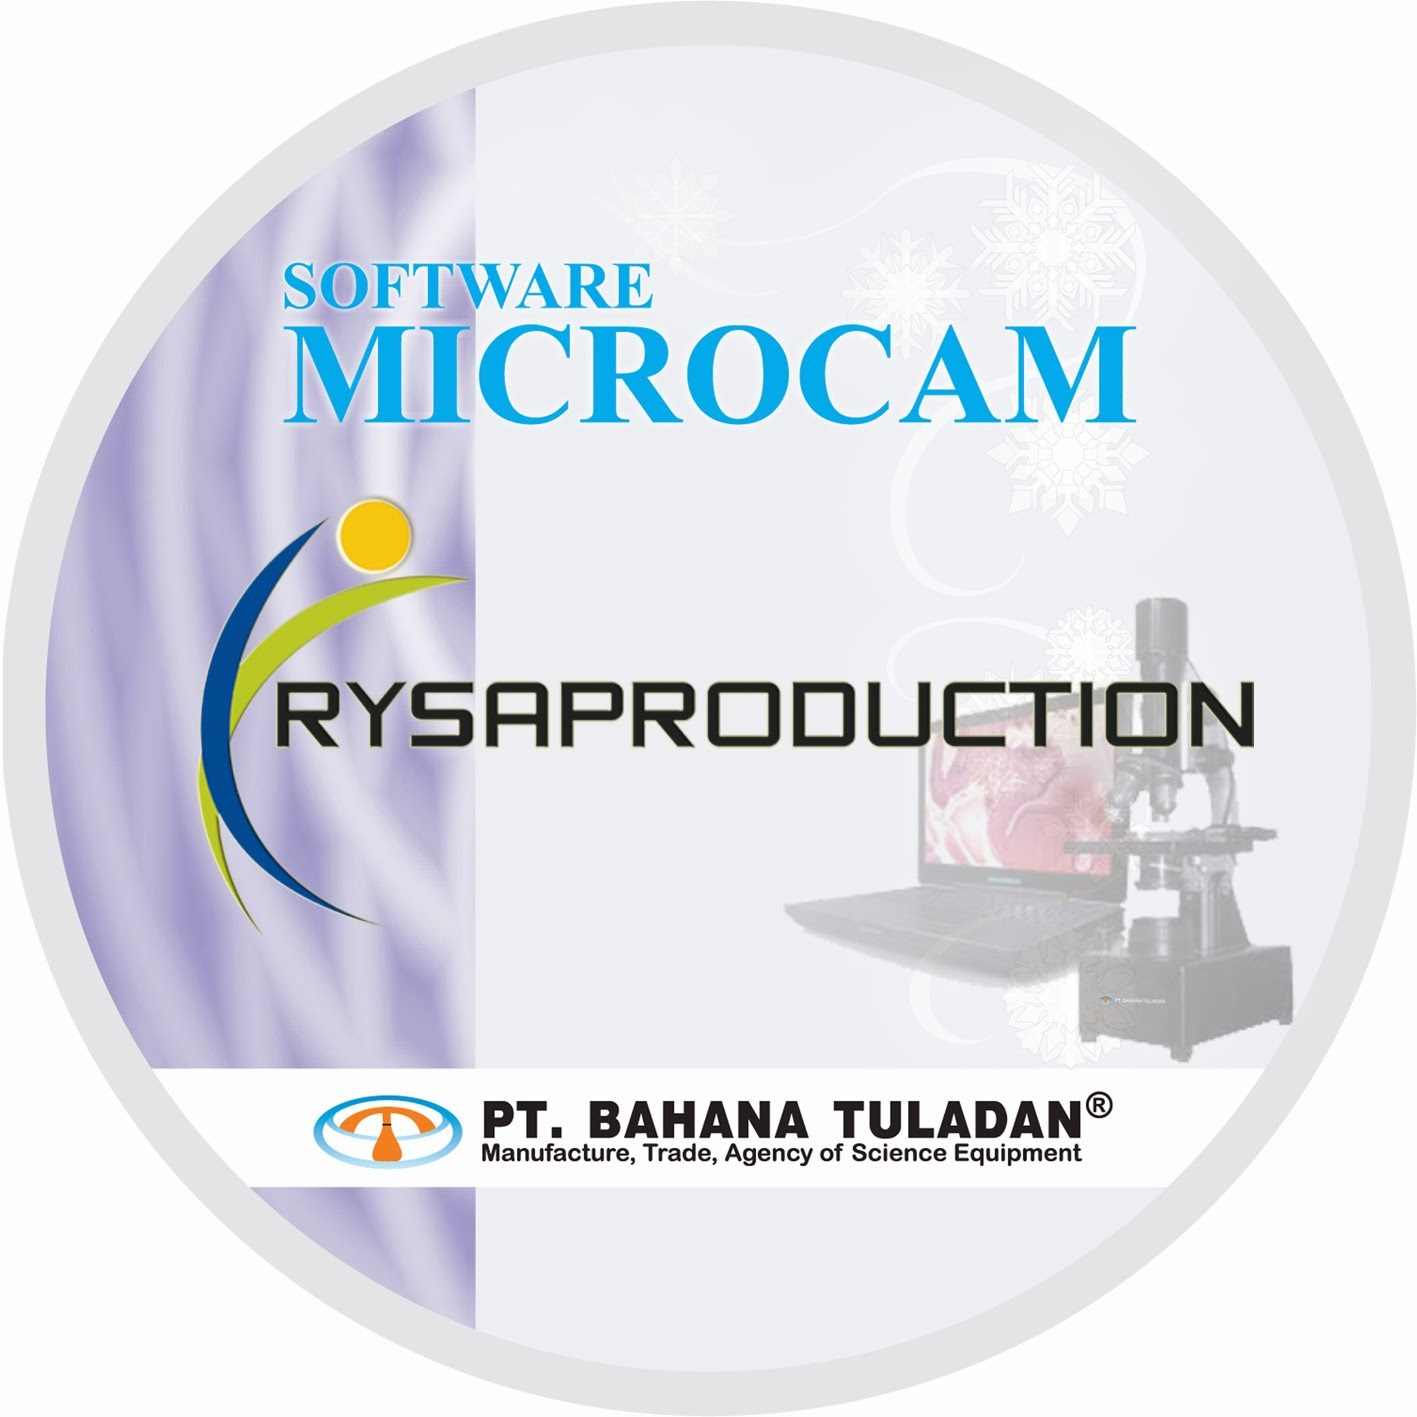 Software Microcam